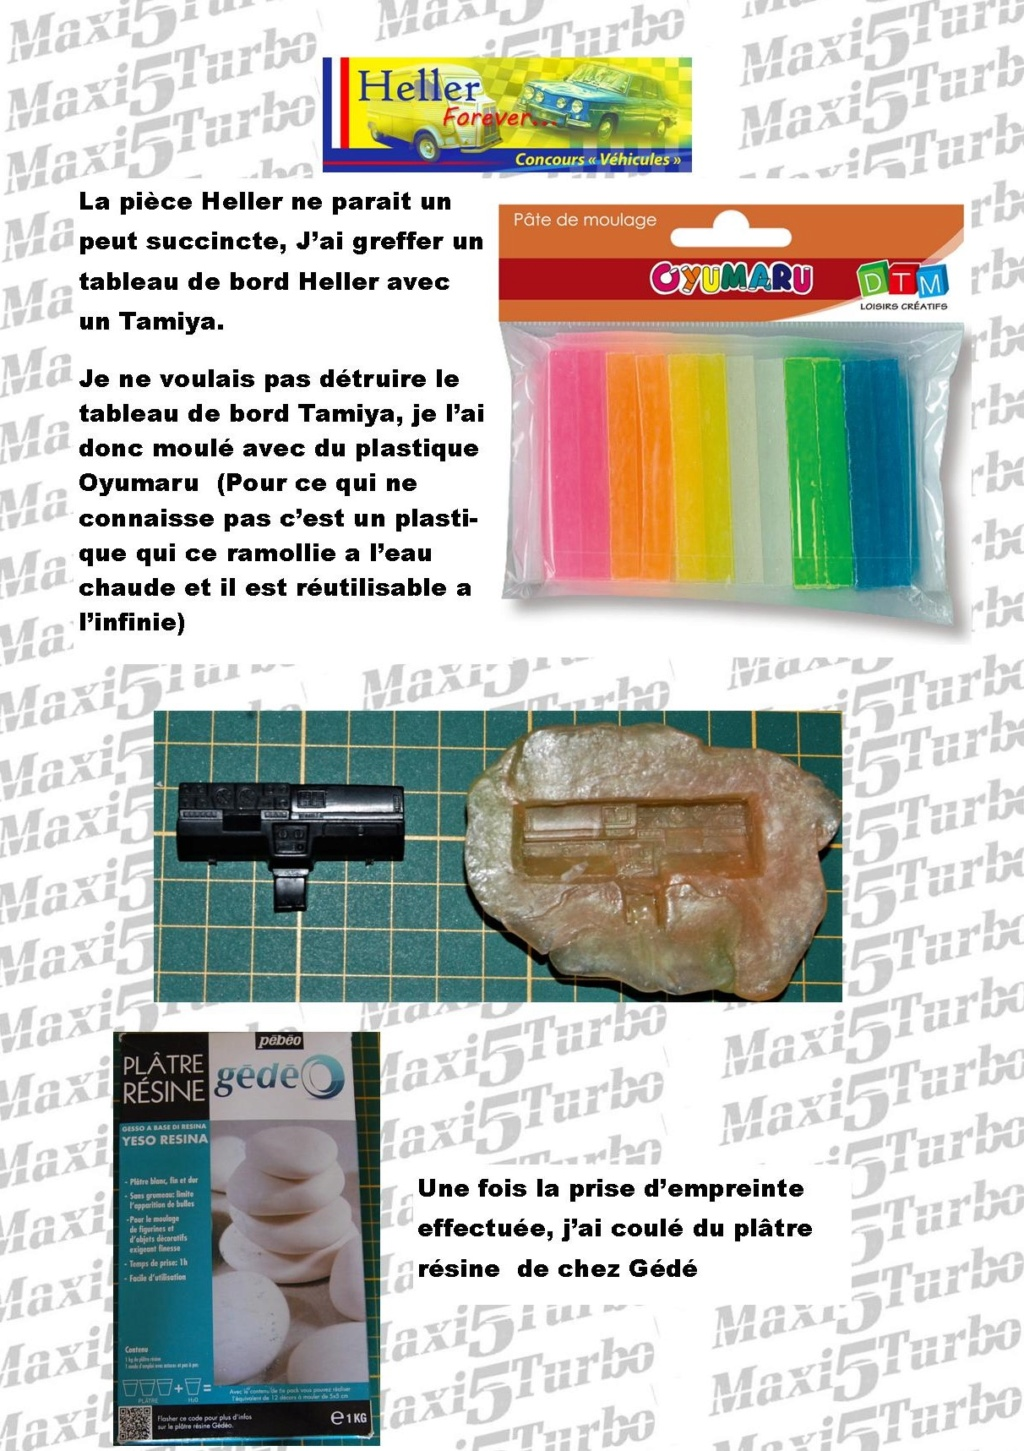 (1/24) Renault 5 Maxi turbo Ref 80717 ( Hors delai ) - Page 6 8110